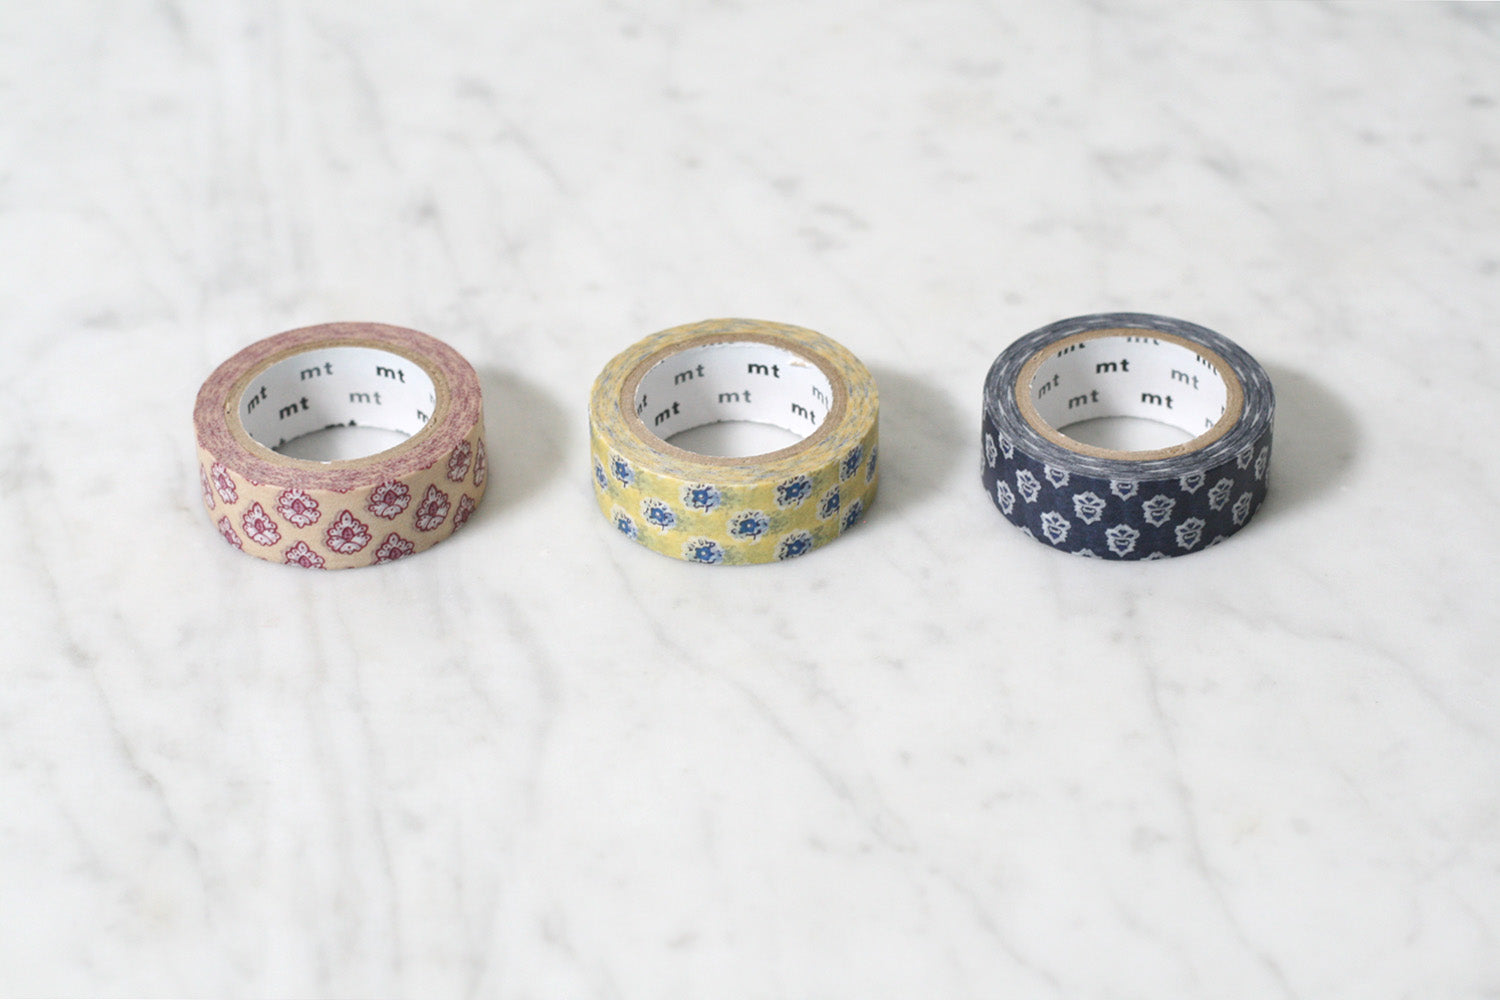 mt x Les Olivades Washi Tape